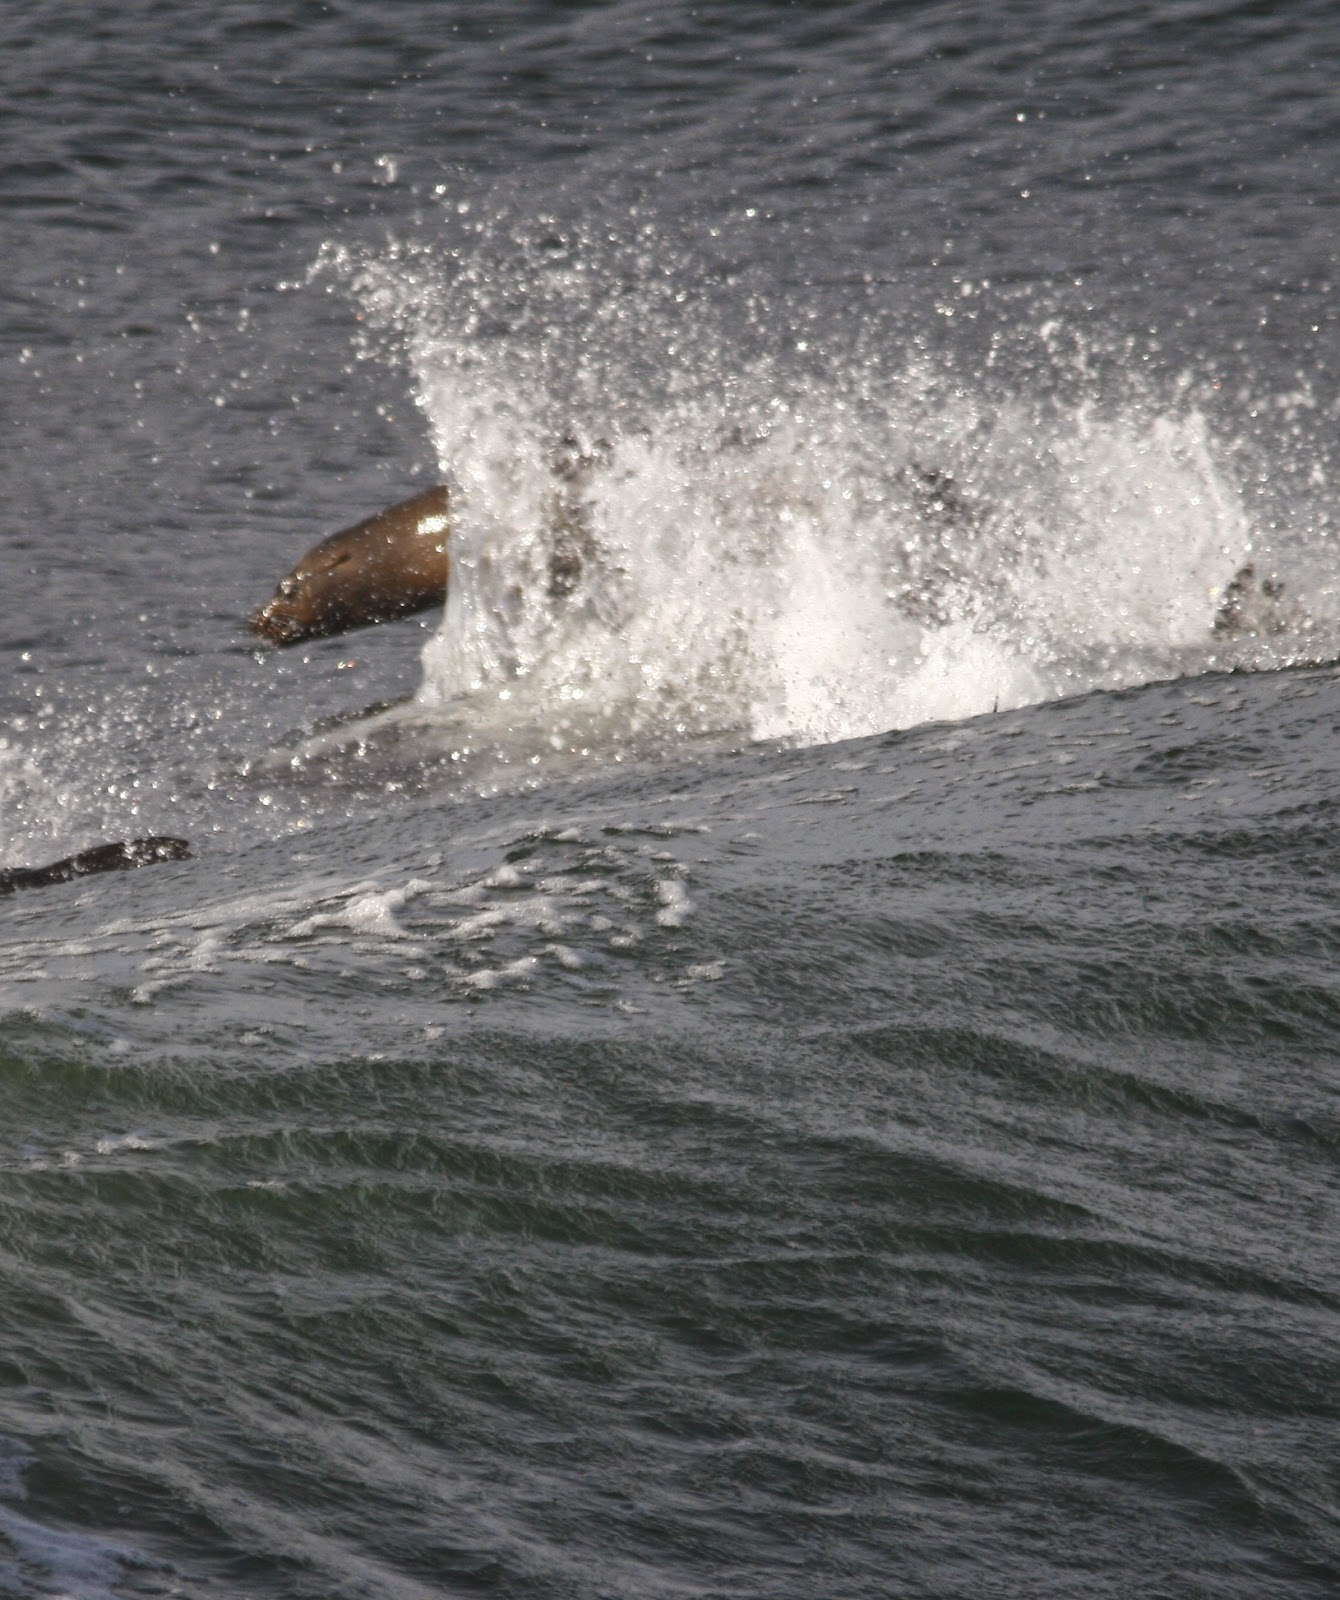 A Close Up Showing The Snout And I Think You Can See Why Sea Lions Are Eared Seals